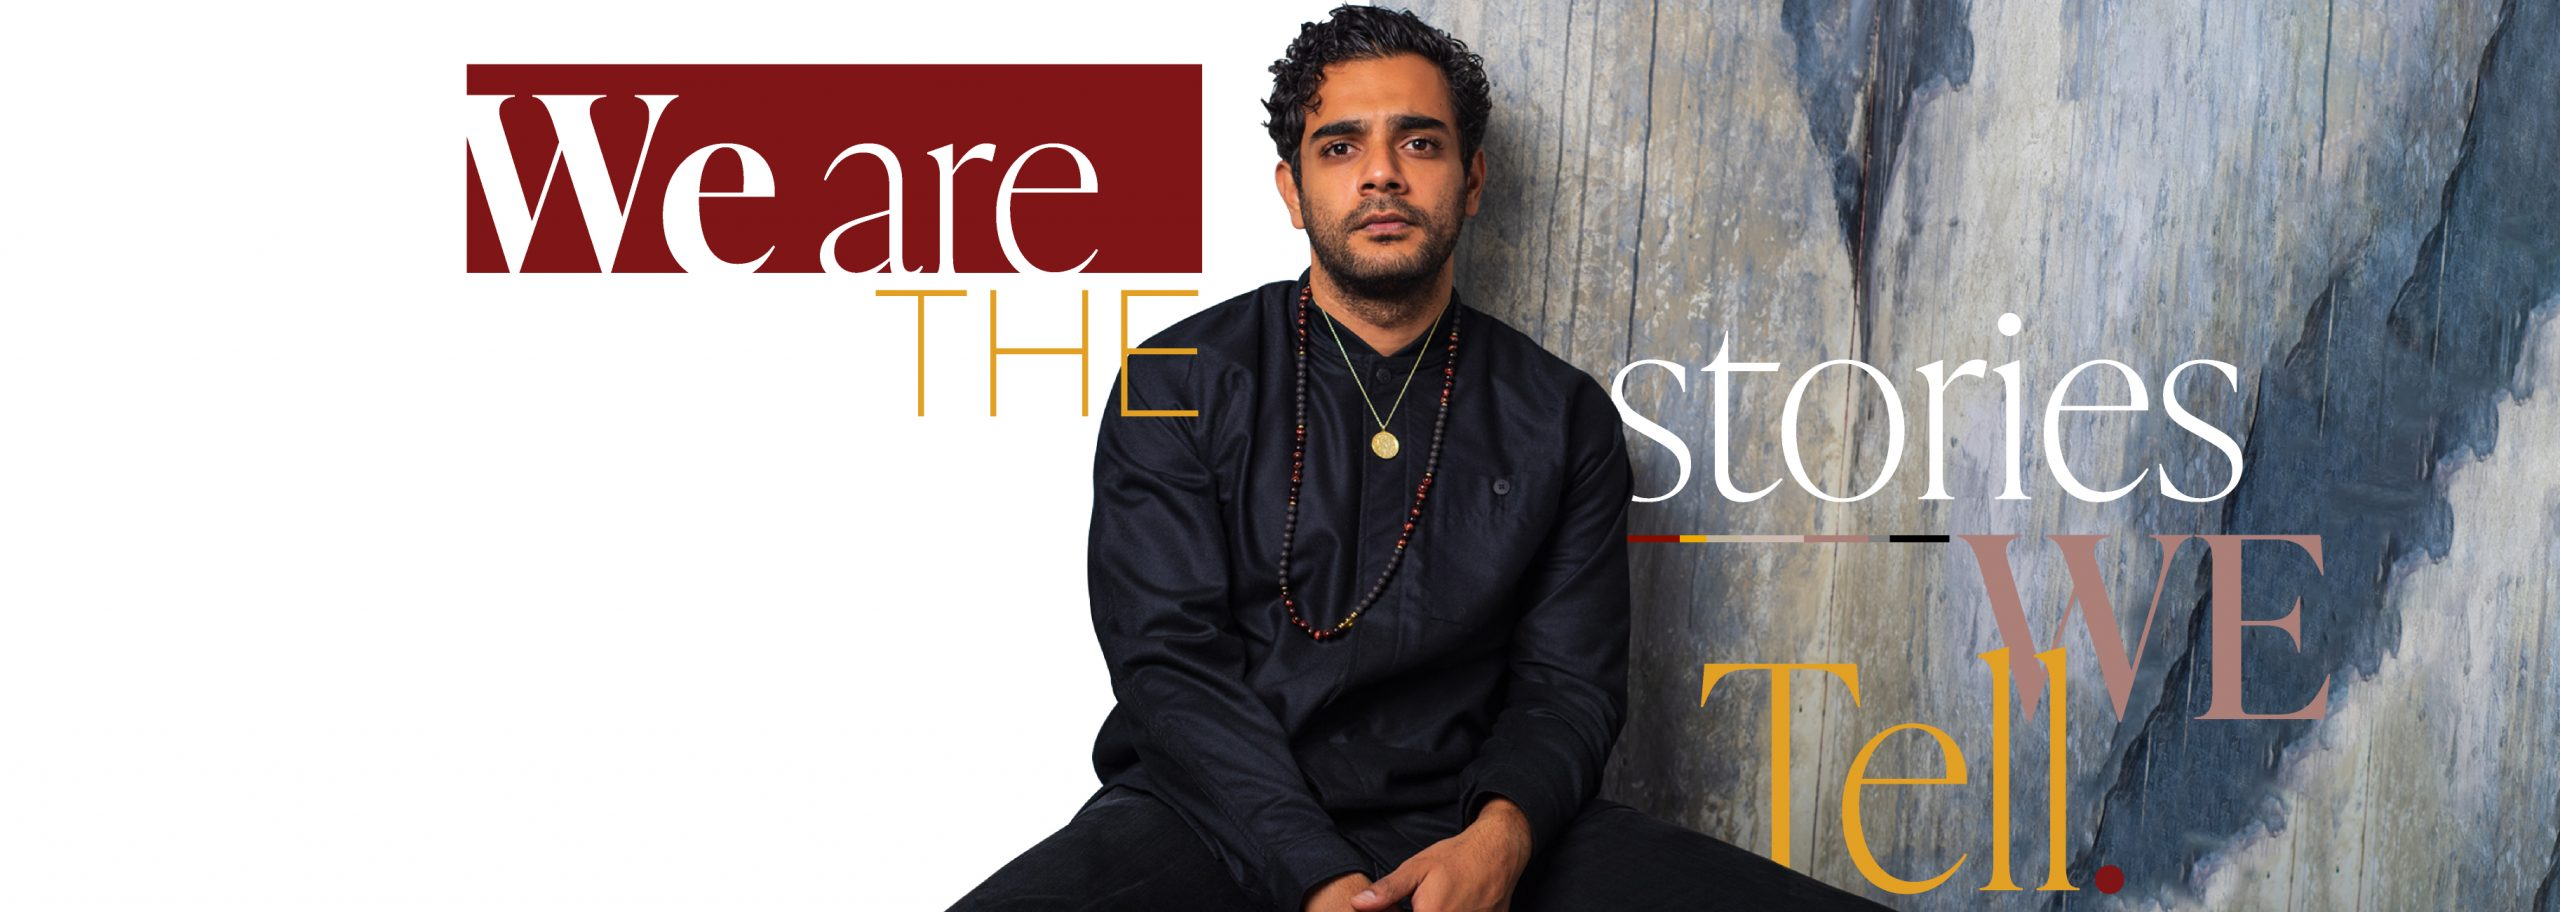 """Hamza Haq in our portrait studio. Surrounded by the saying """"We are the stories we tell."""""""